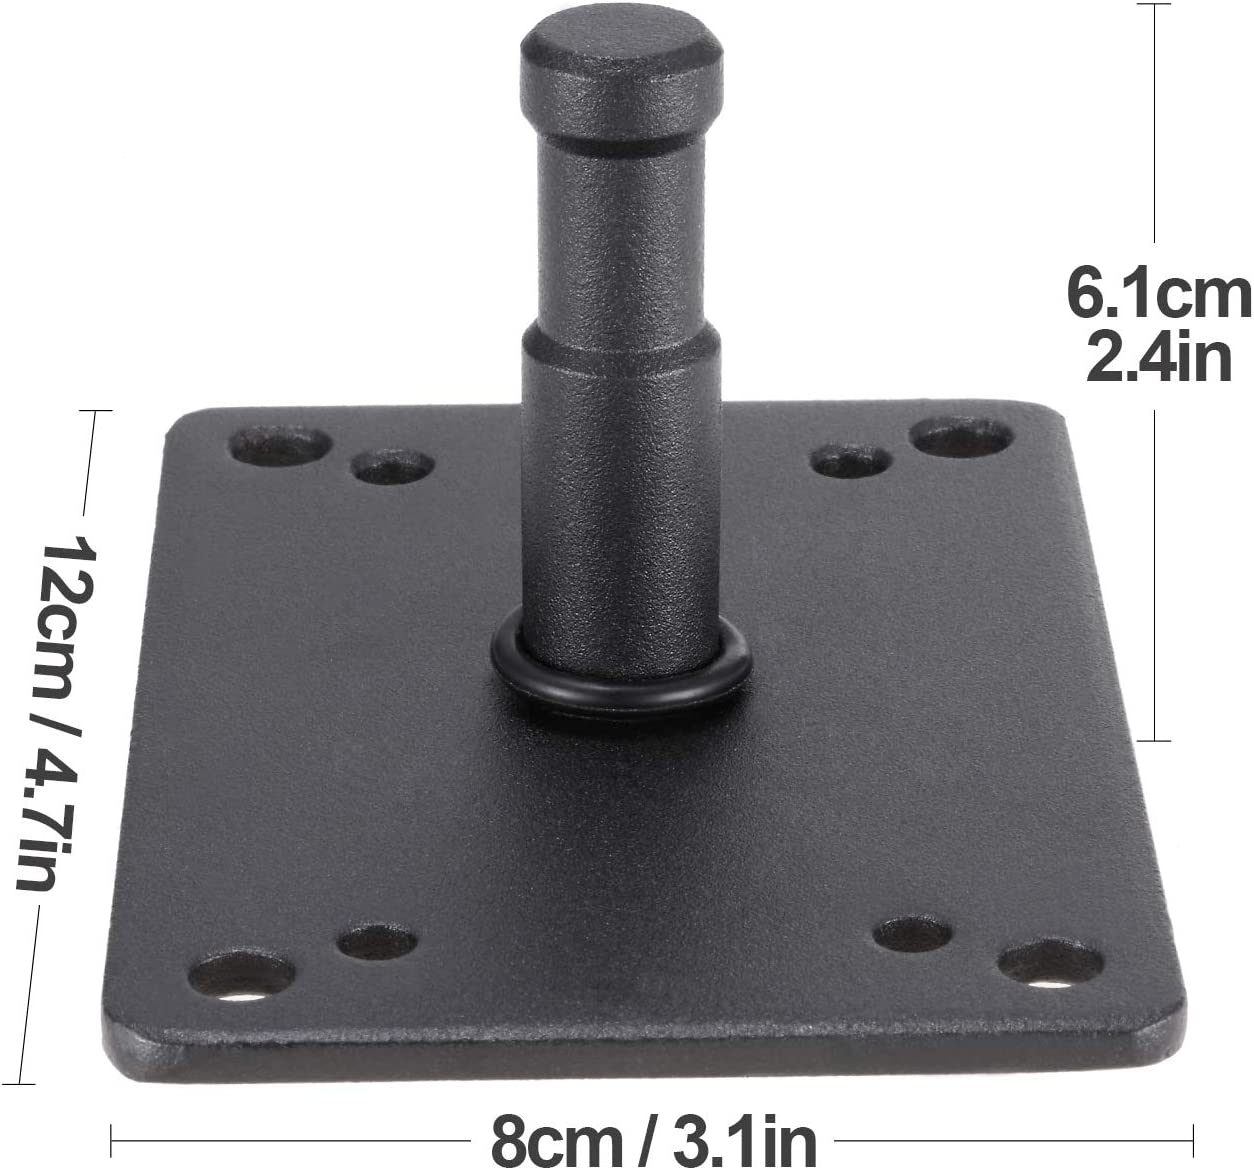 6.2 inch Baby Plate M11-027C Lighting Wall Holder Mini Light Stand Stud for Photo Studio Flash Accessories Youngerfoto Baby Pin Wall Plate